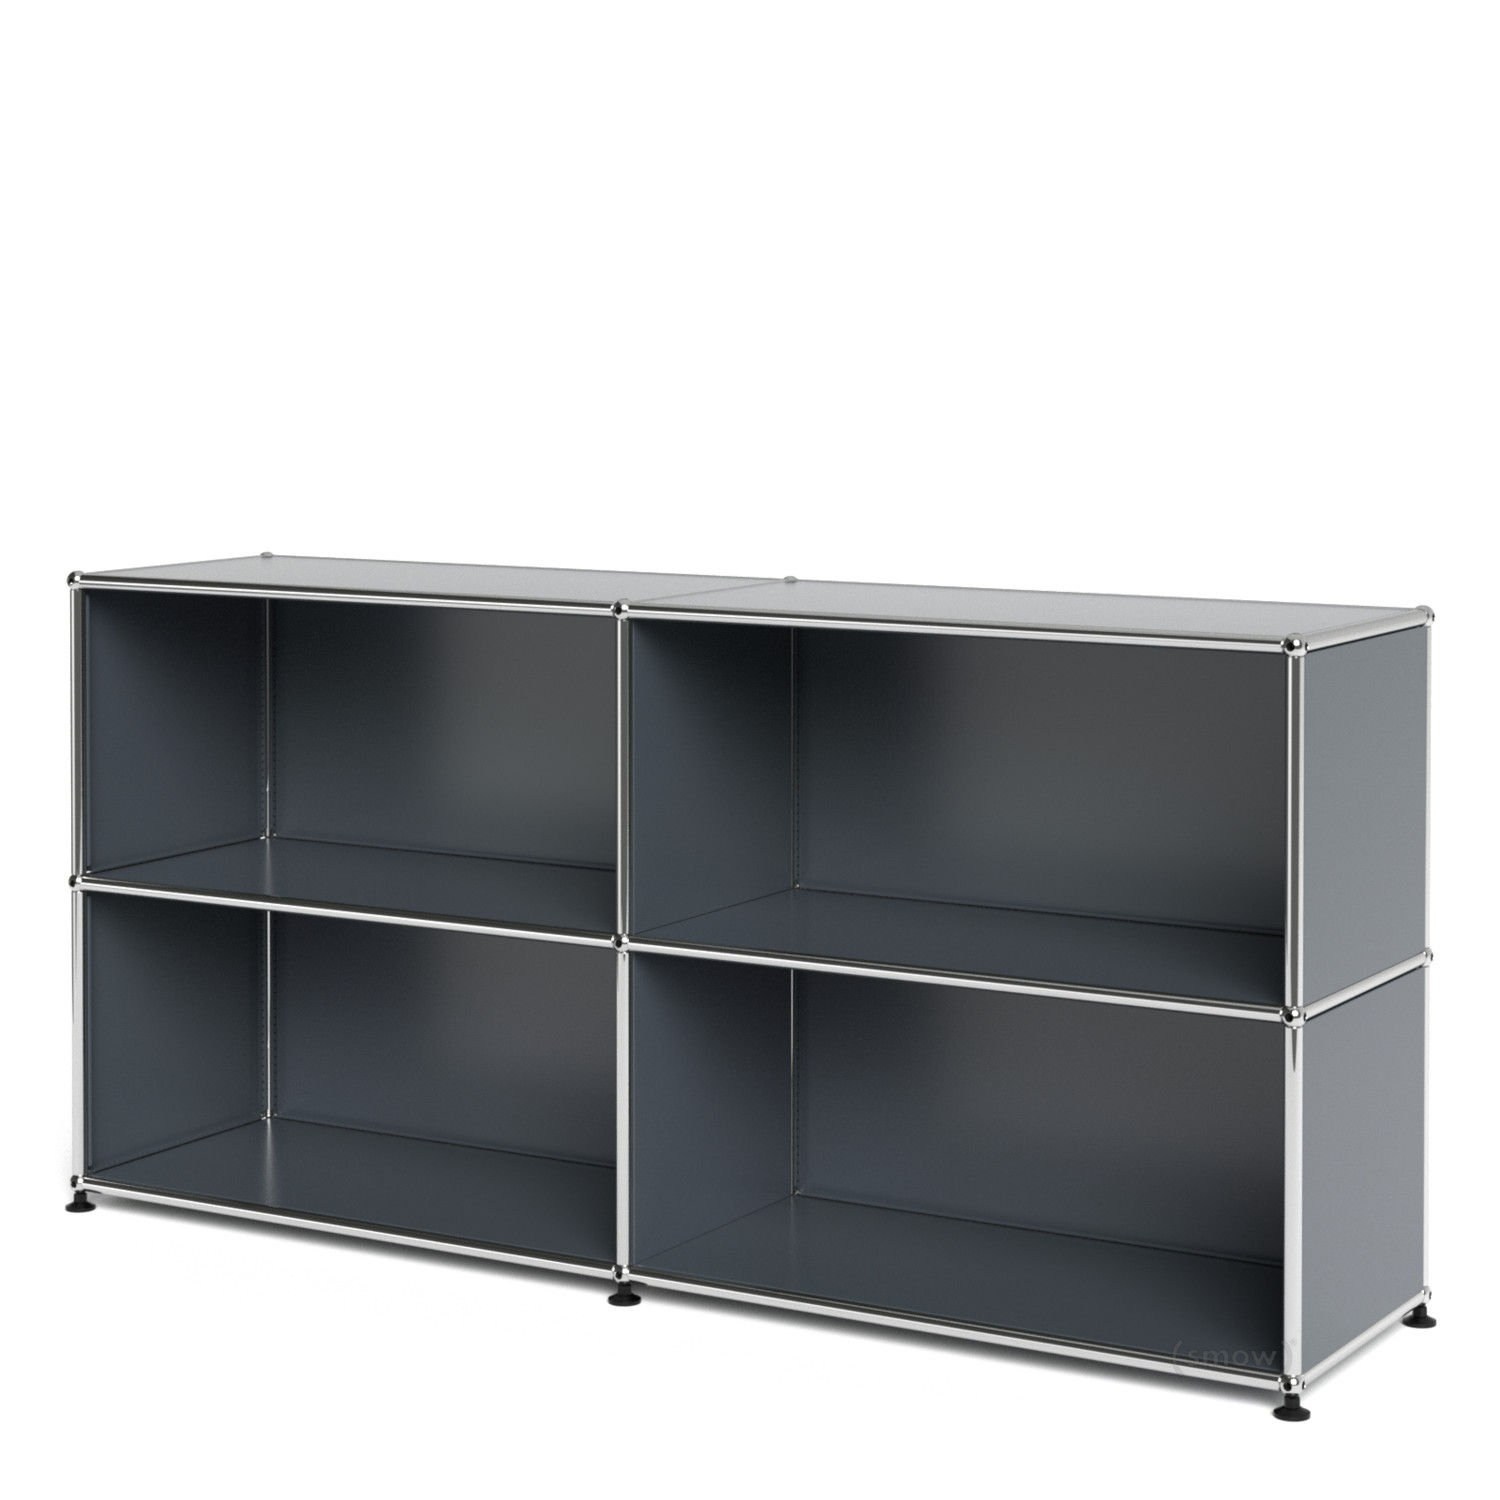 usm haller sideboard l open mid grey ral 7005 by fritz haller paul sch rer designer. Black Bedroom Furniture Sets. Home Design Ideas